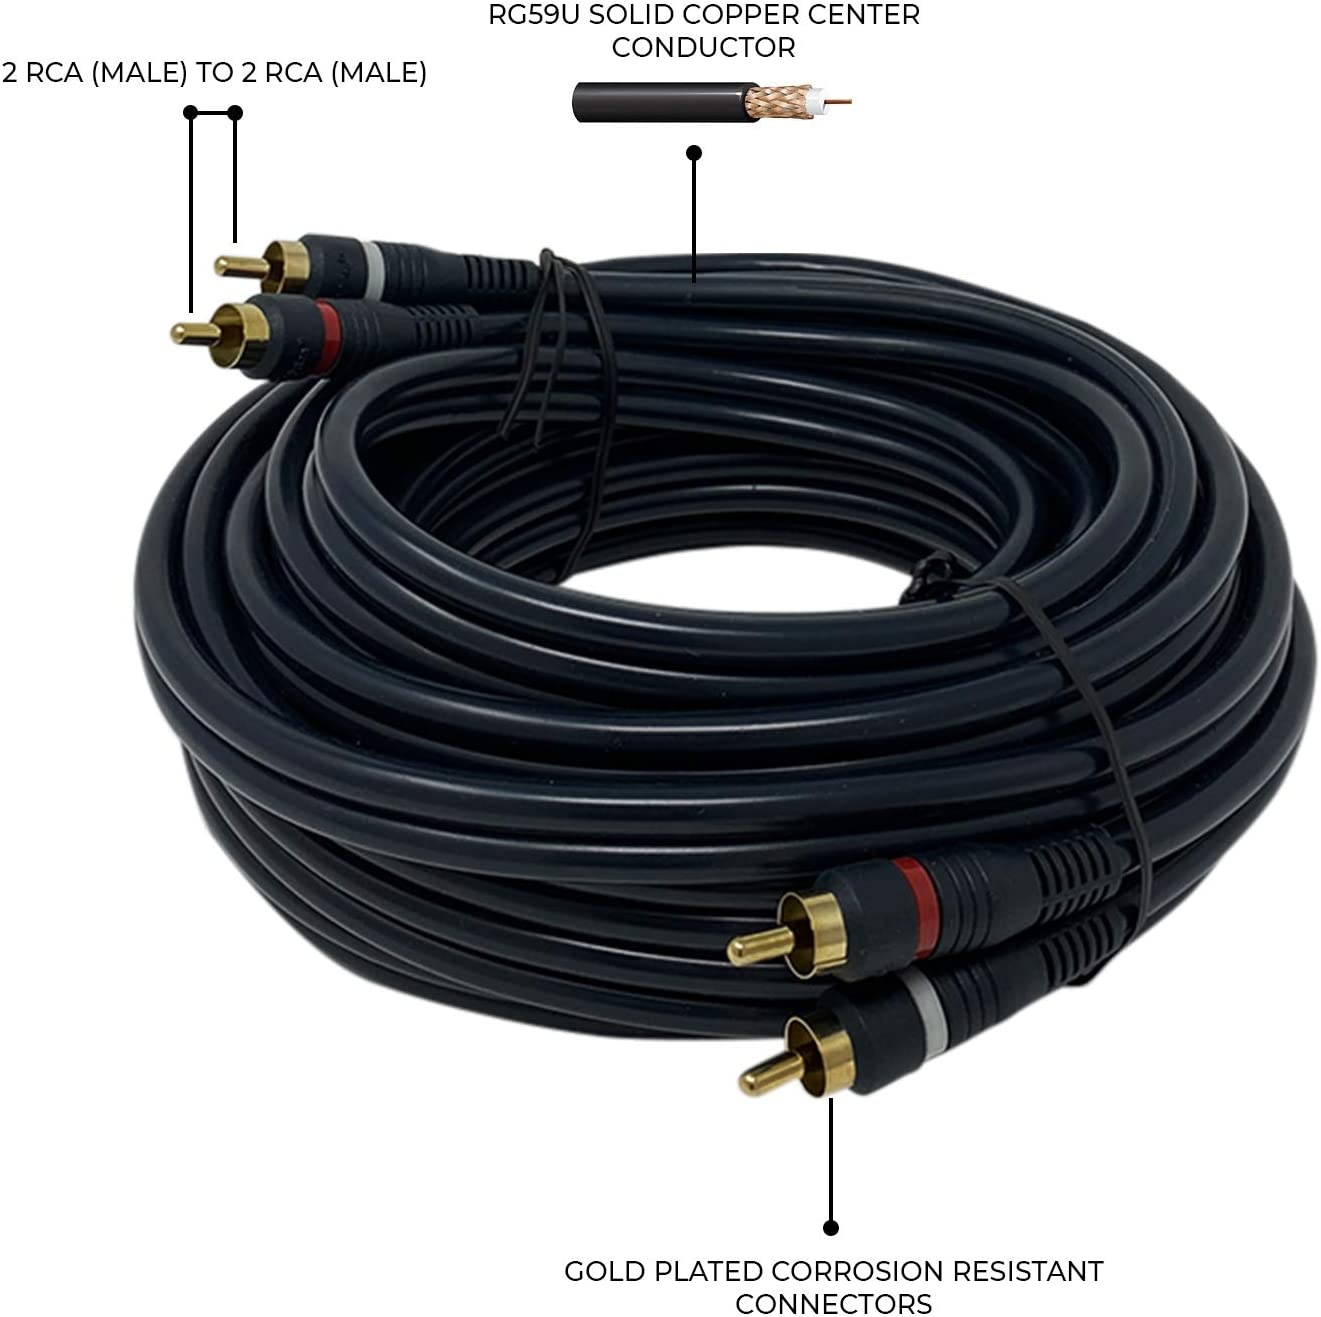 25 Feet 3 RCA iMBAPrice  2RCA Male to 2RCA Male Home Theater Audio Cable 3 RCA